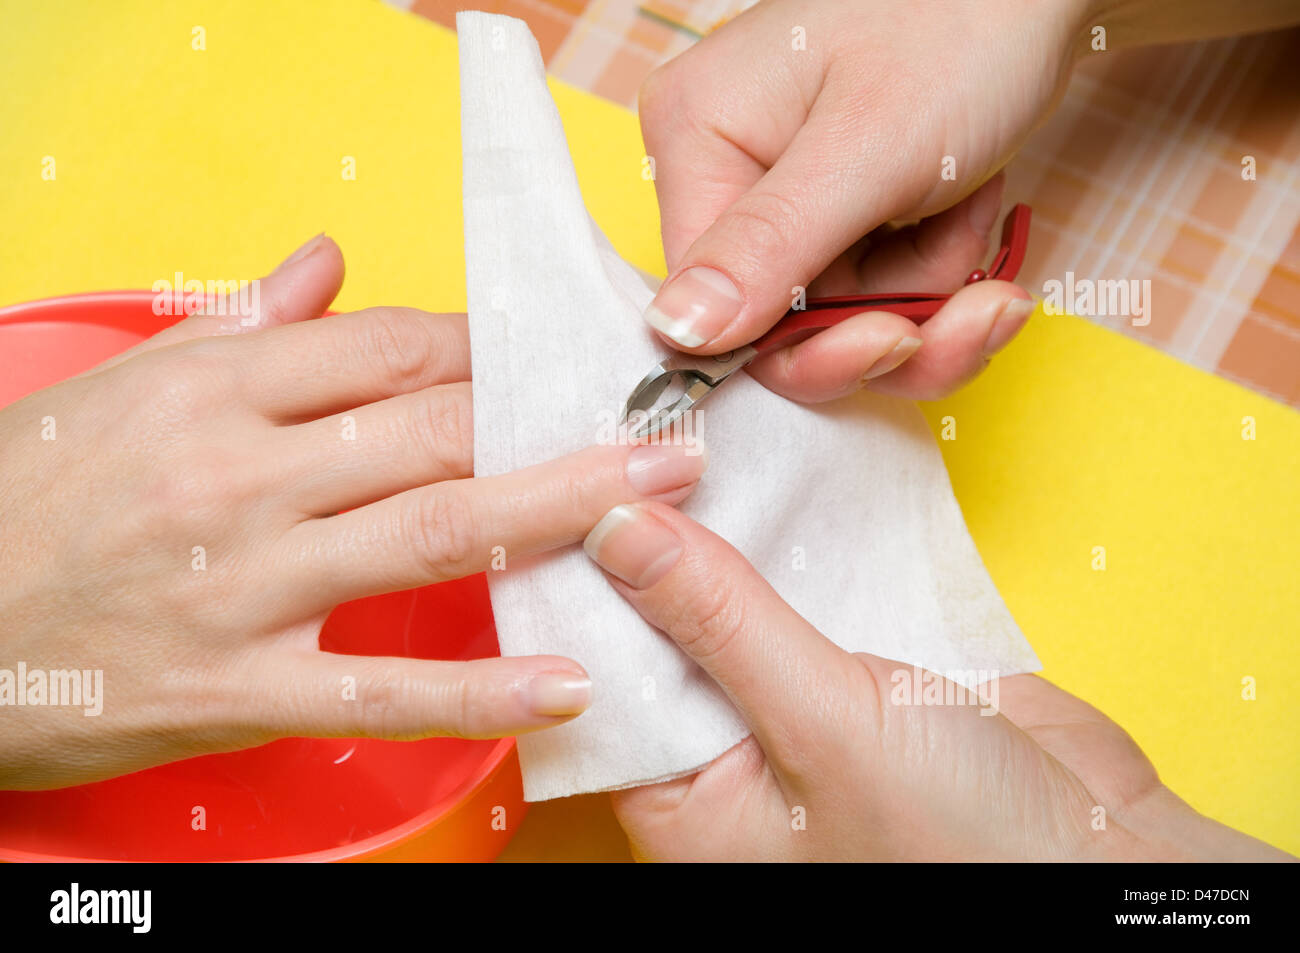 Procedure of manicure, is photographed close-up . - Stock Image